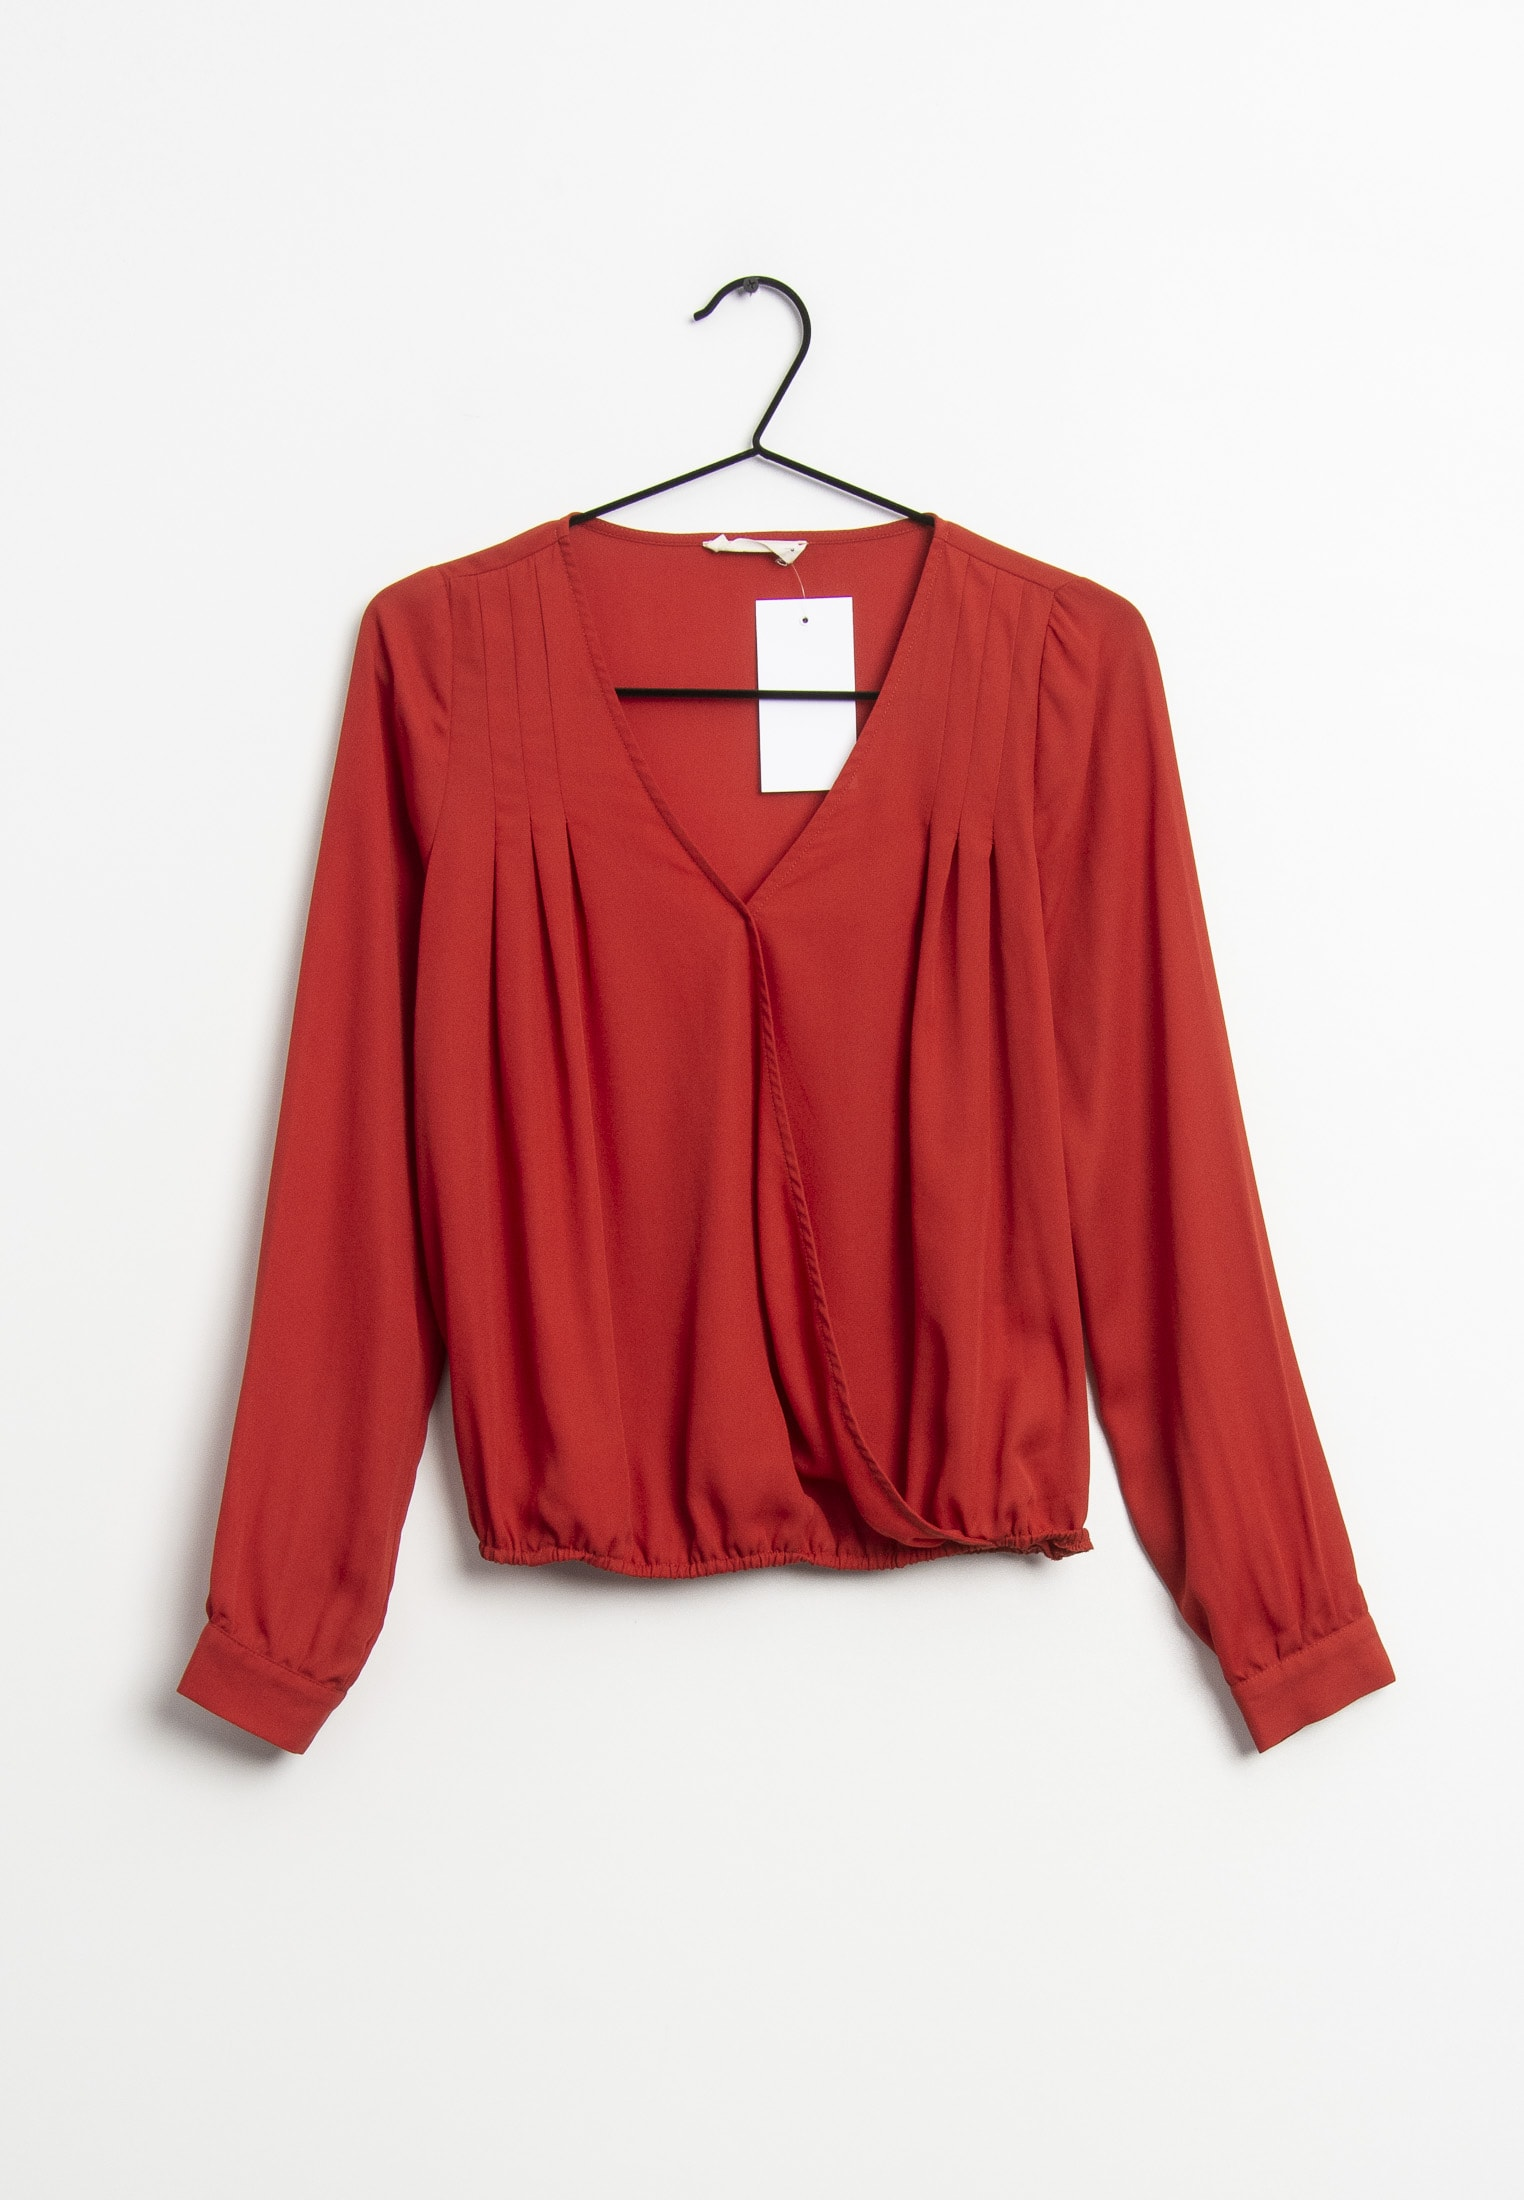 24colours Bluse Rot Gr.36